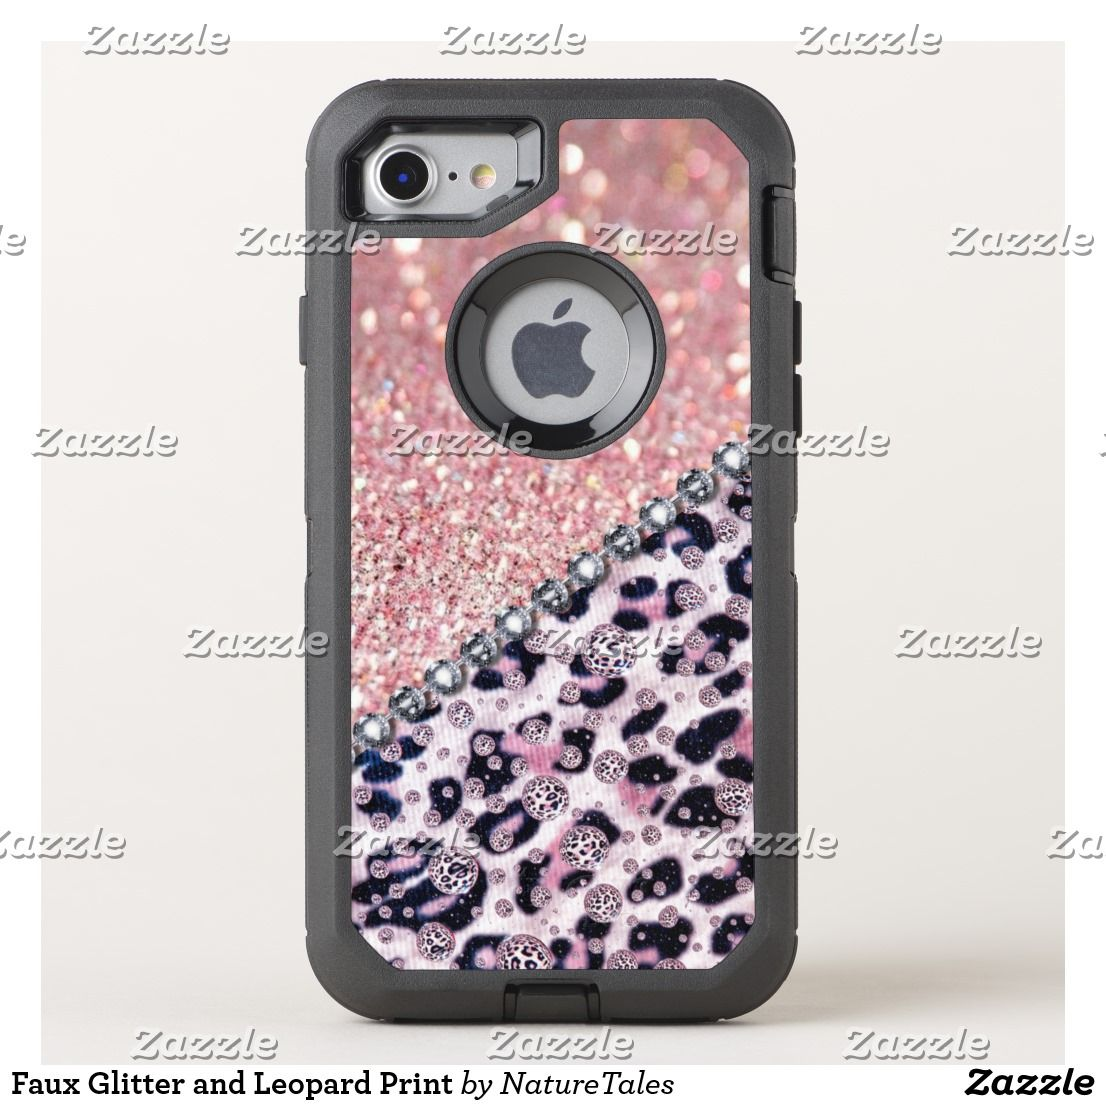 Faux glitter and leopard print otterbox iphone case